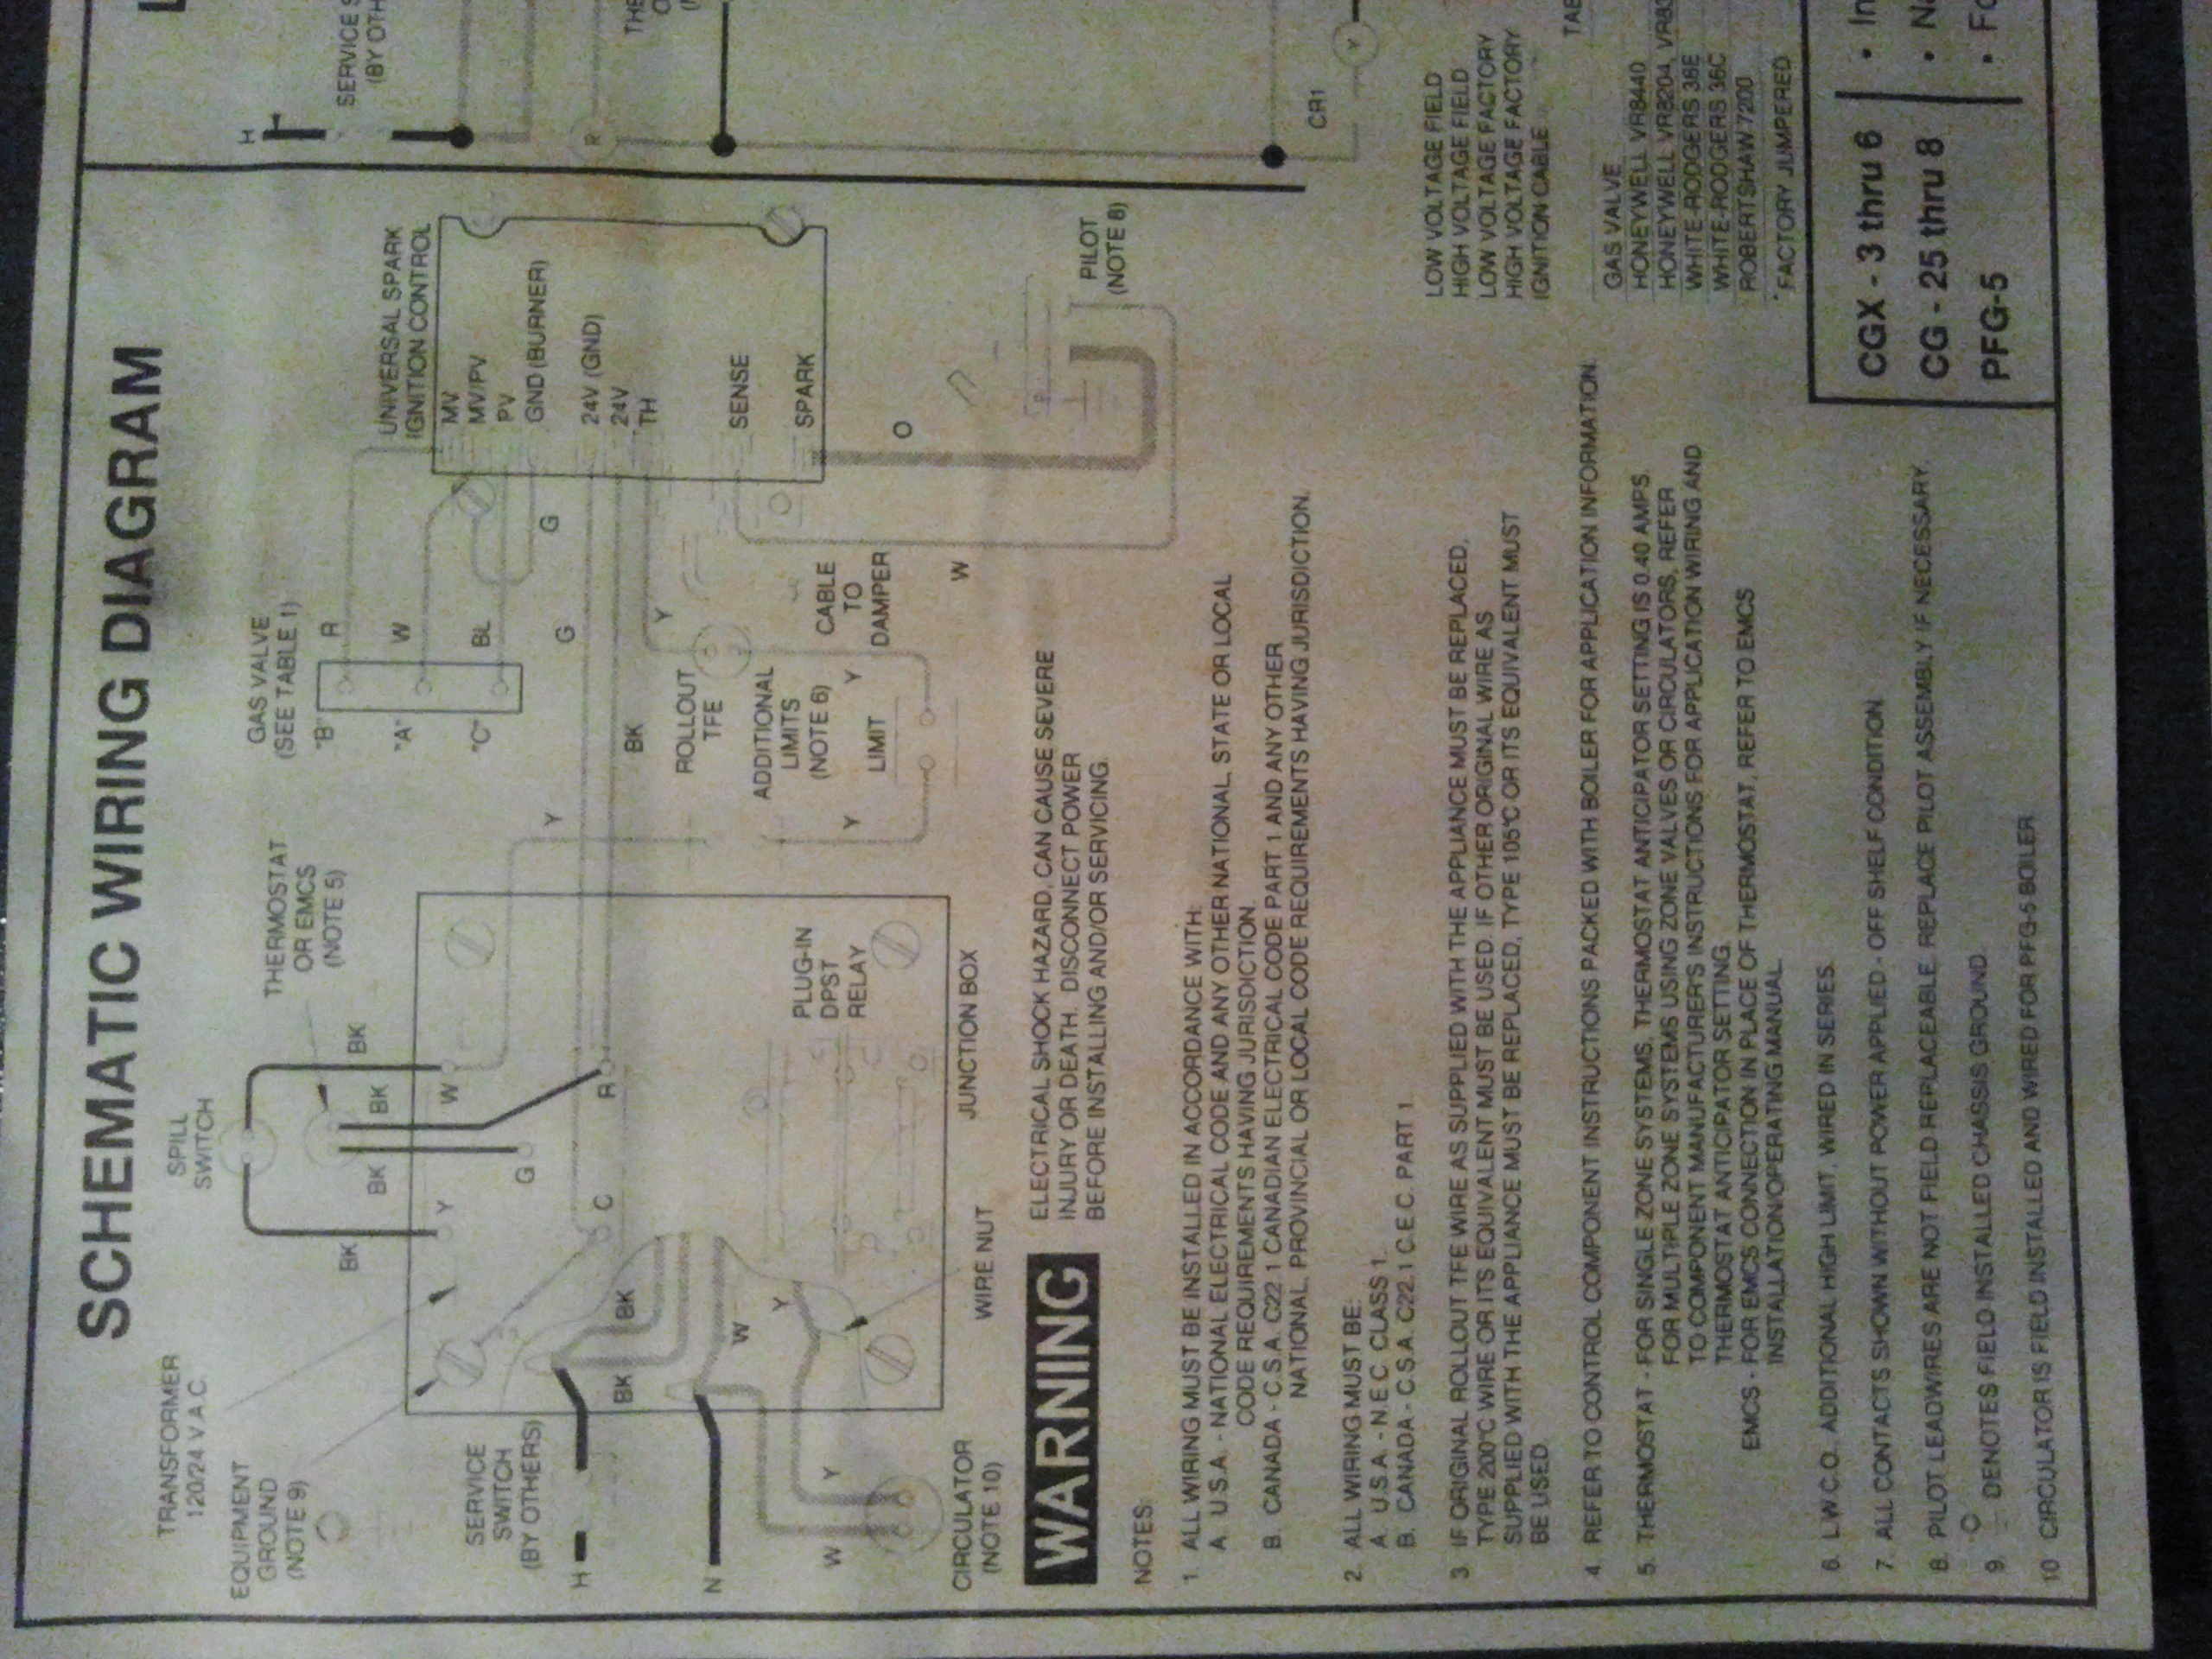 2013 01 11_235352_2013 01 11_18.05.08 i have a weil mclain gas furnace that i installed in 1991 a automatic vent damper wiring diagram at bakdesigns.co